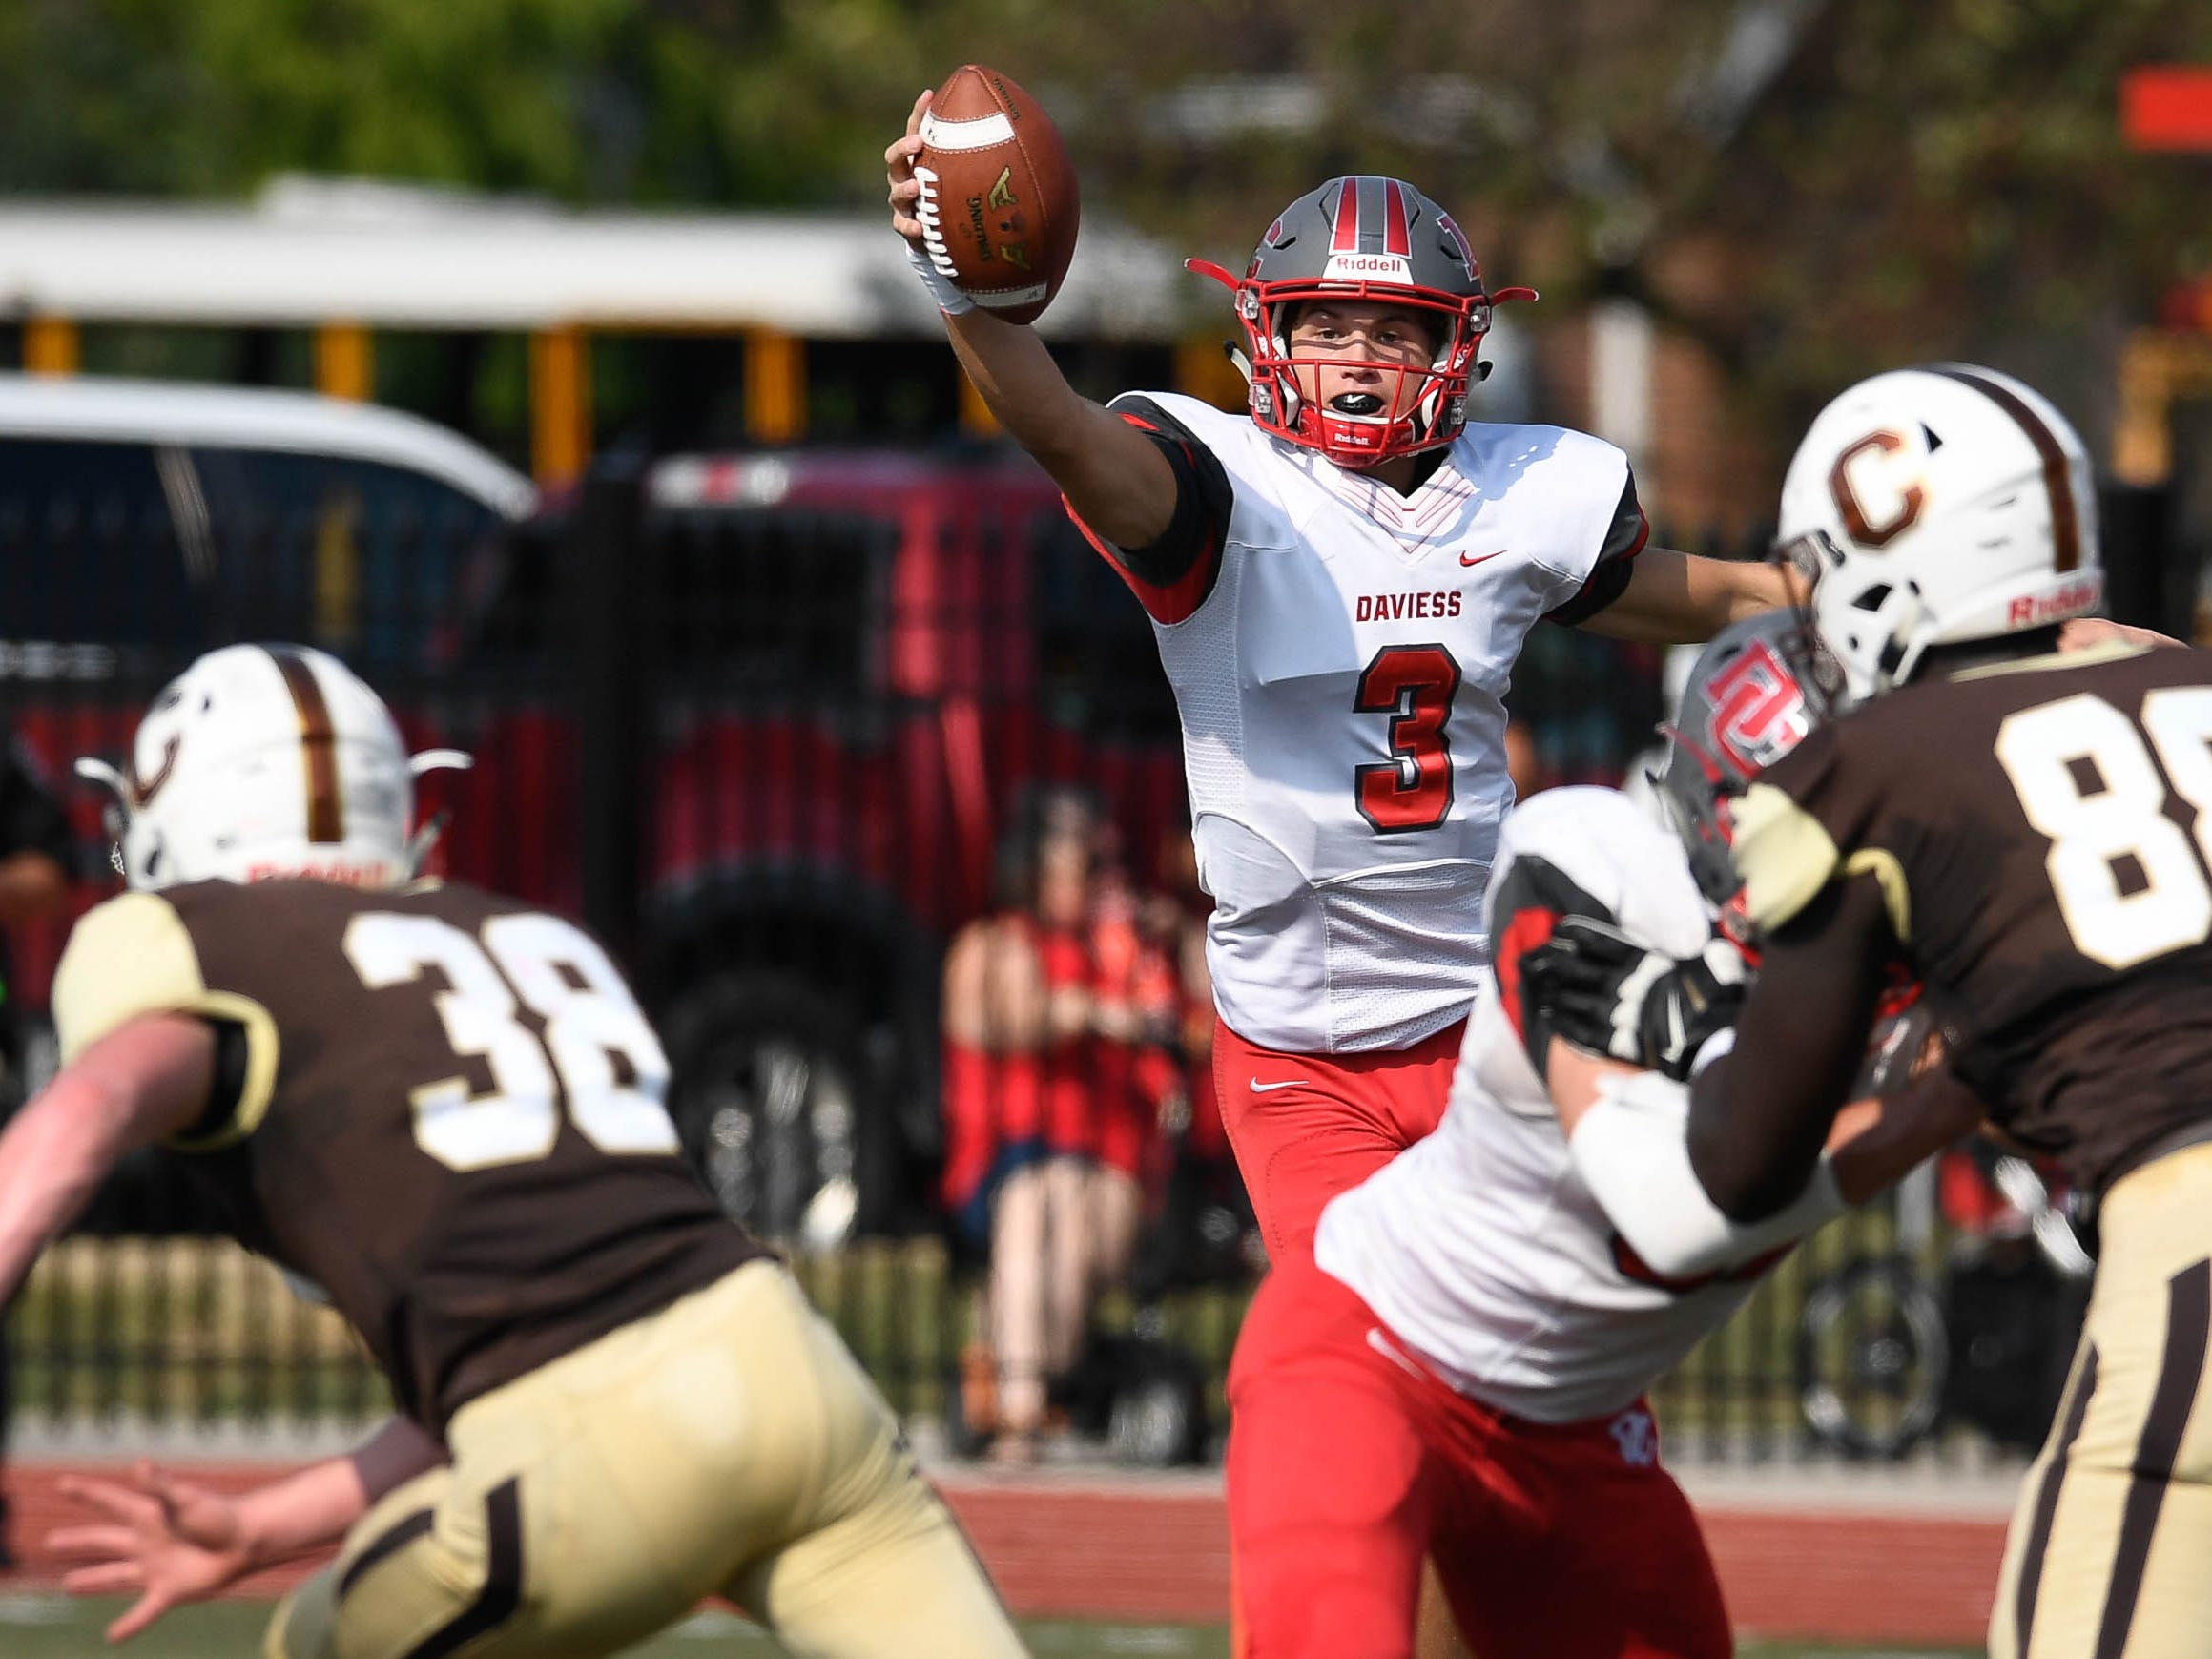 Daviess County quarterback Joseph Cambron (3) pulls down a high snap as the Daviess County Panthers play the Evansville Central Bears at the Border Bowl played at Enlow Field in Evansville Saturday, August 25, 2018.